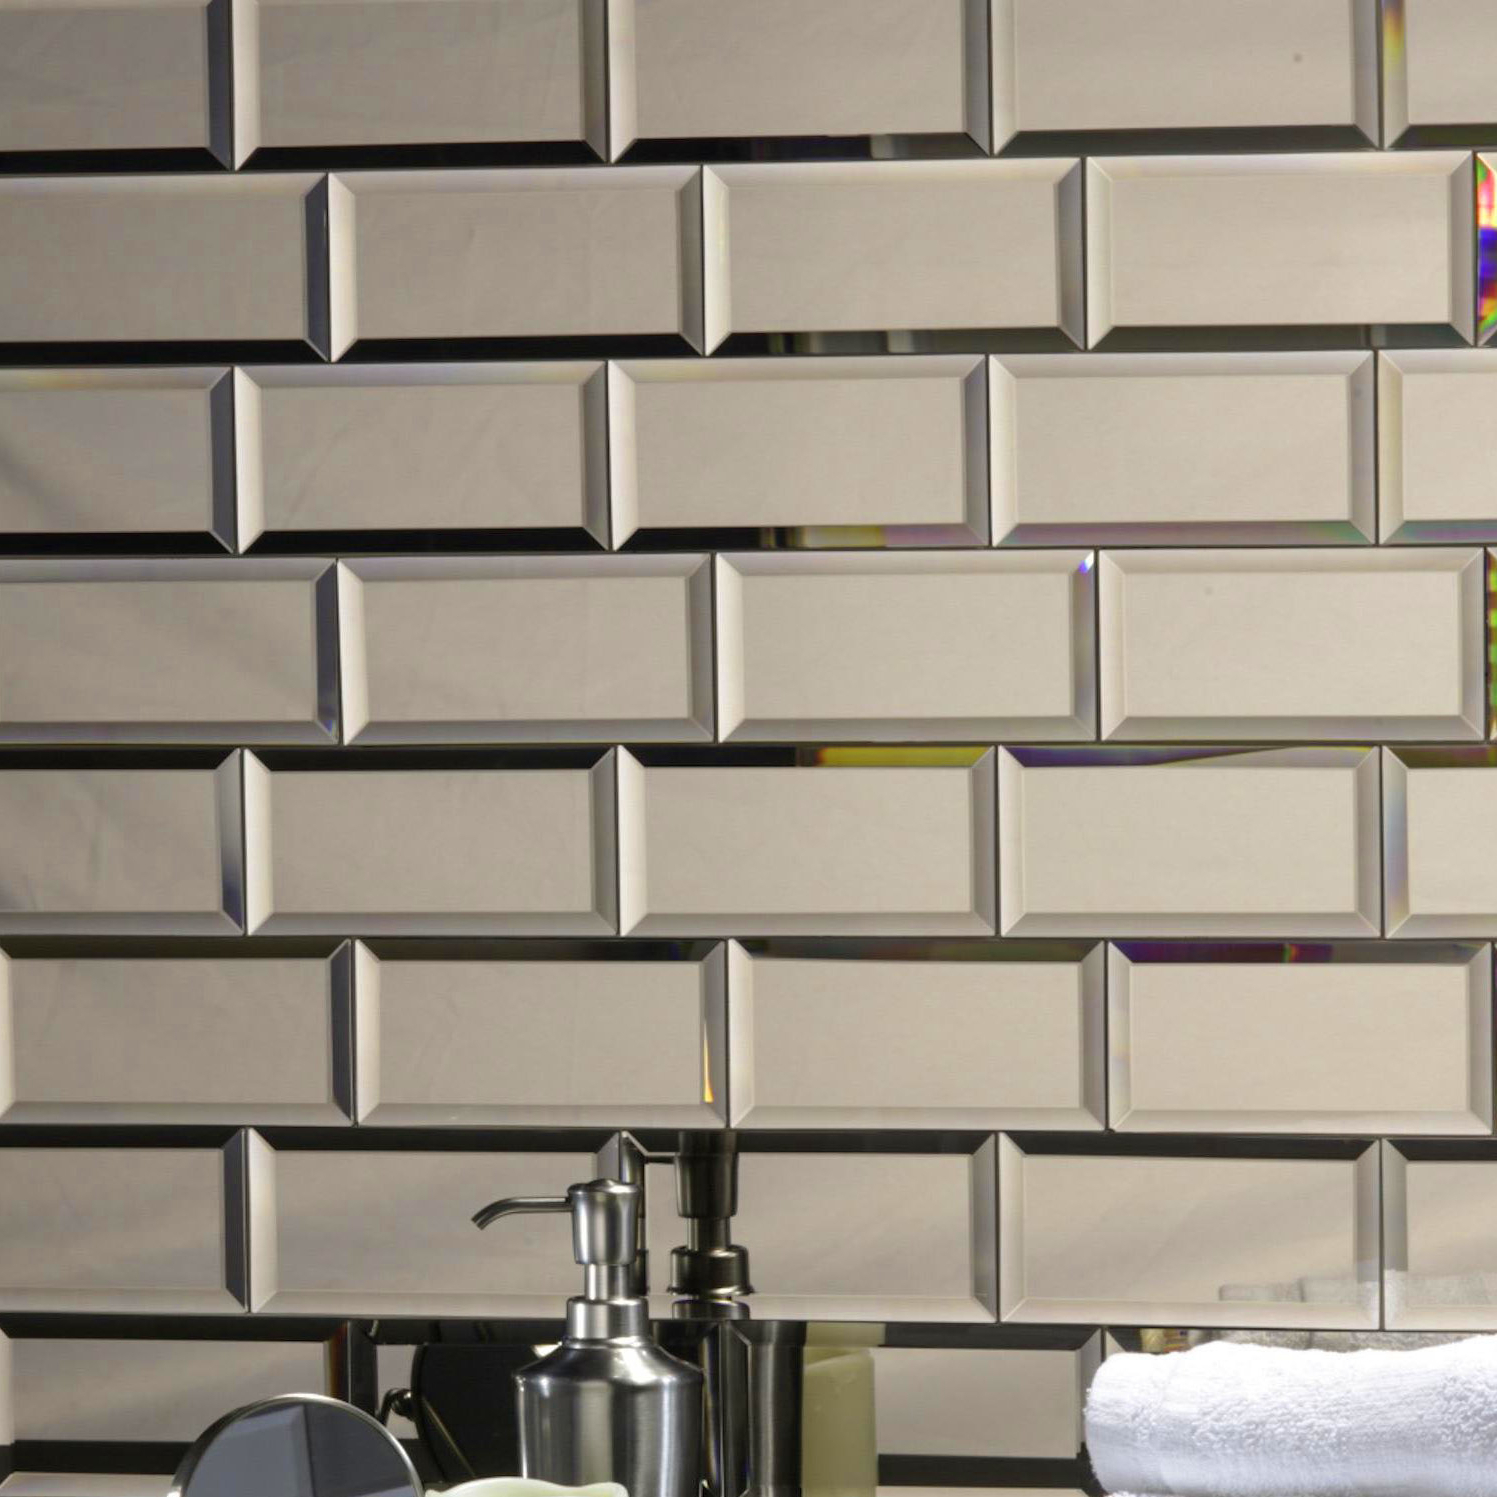 Stick On Wall Mirror Tiles Regarding Trendy Echo Abolos Peel & Stick Beveled 3 X 6 Mirror Glass Handmade Backsplash  Bathroom Subway Wall Tile In Gold (View 17 of 20)